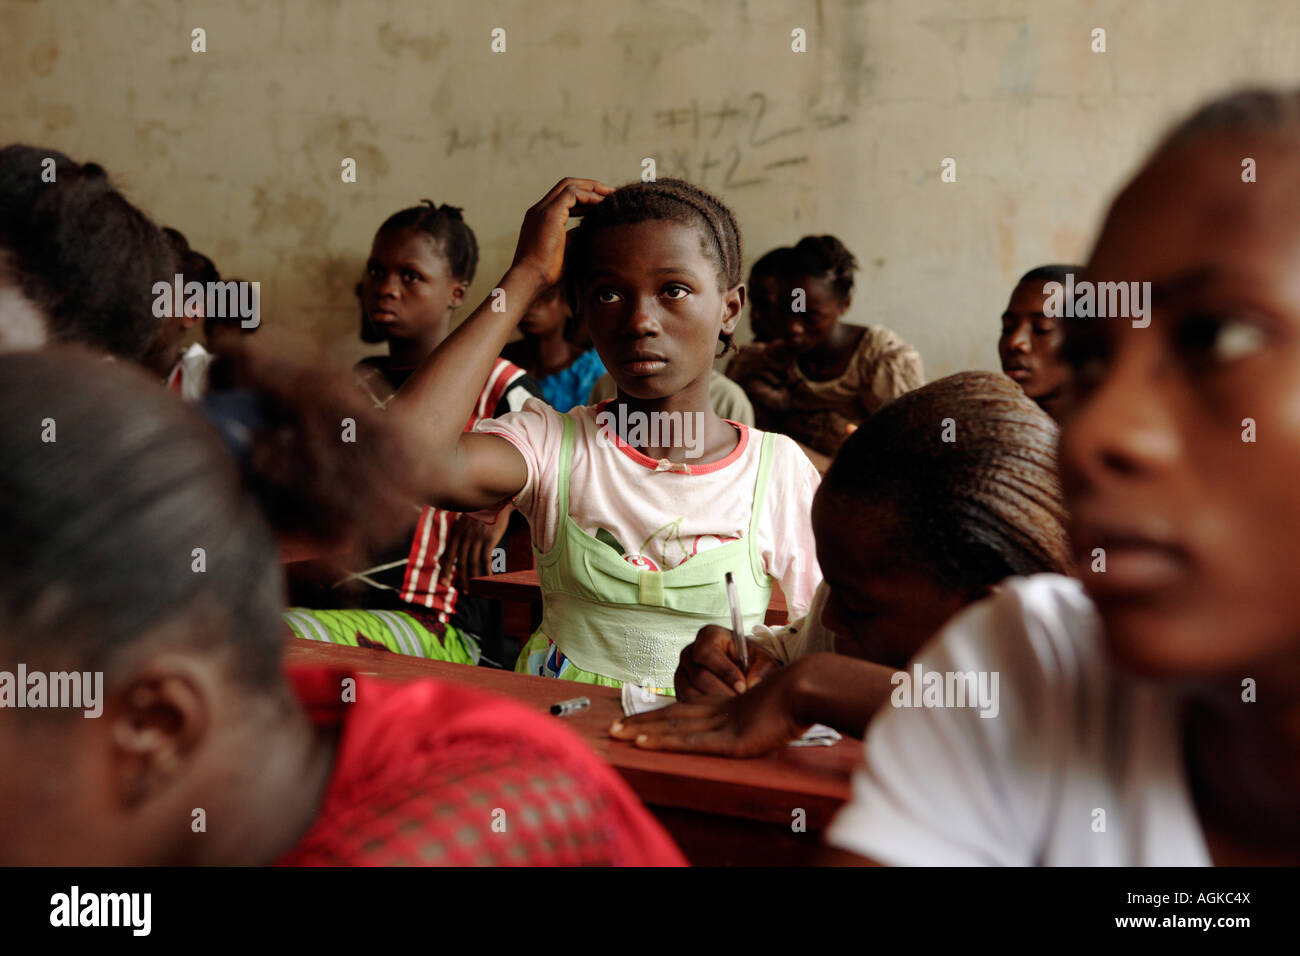 Students on the Accelerated Learning Programme at Zeah Town school which is supported by Save the Children Zeah - Stock Image